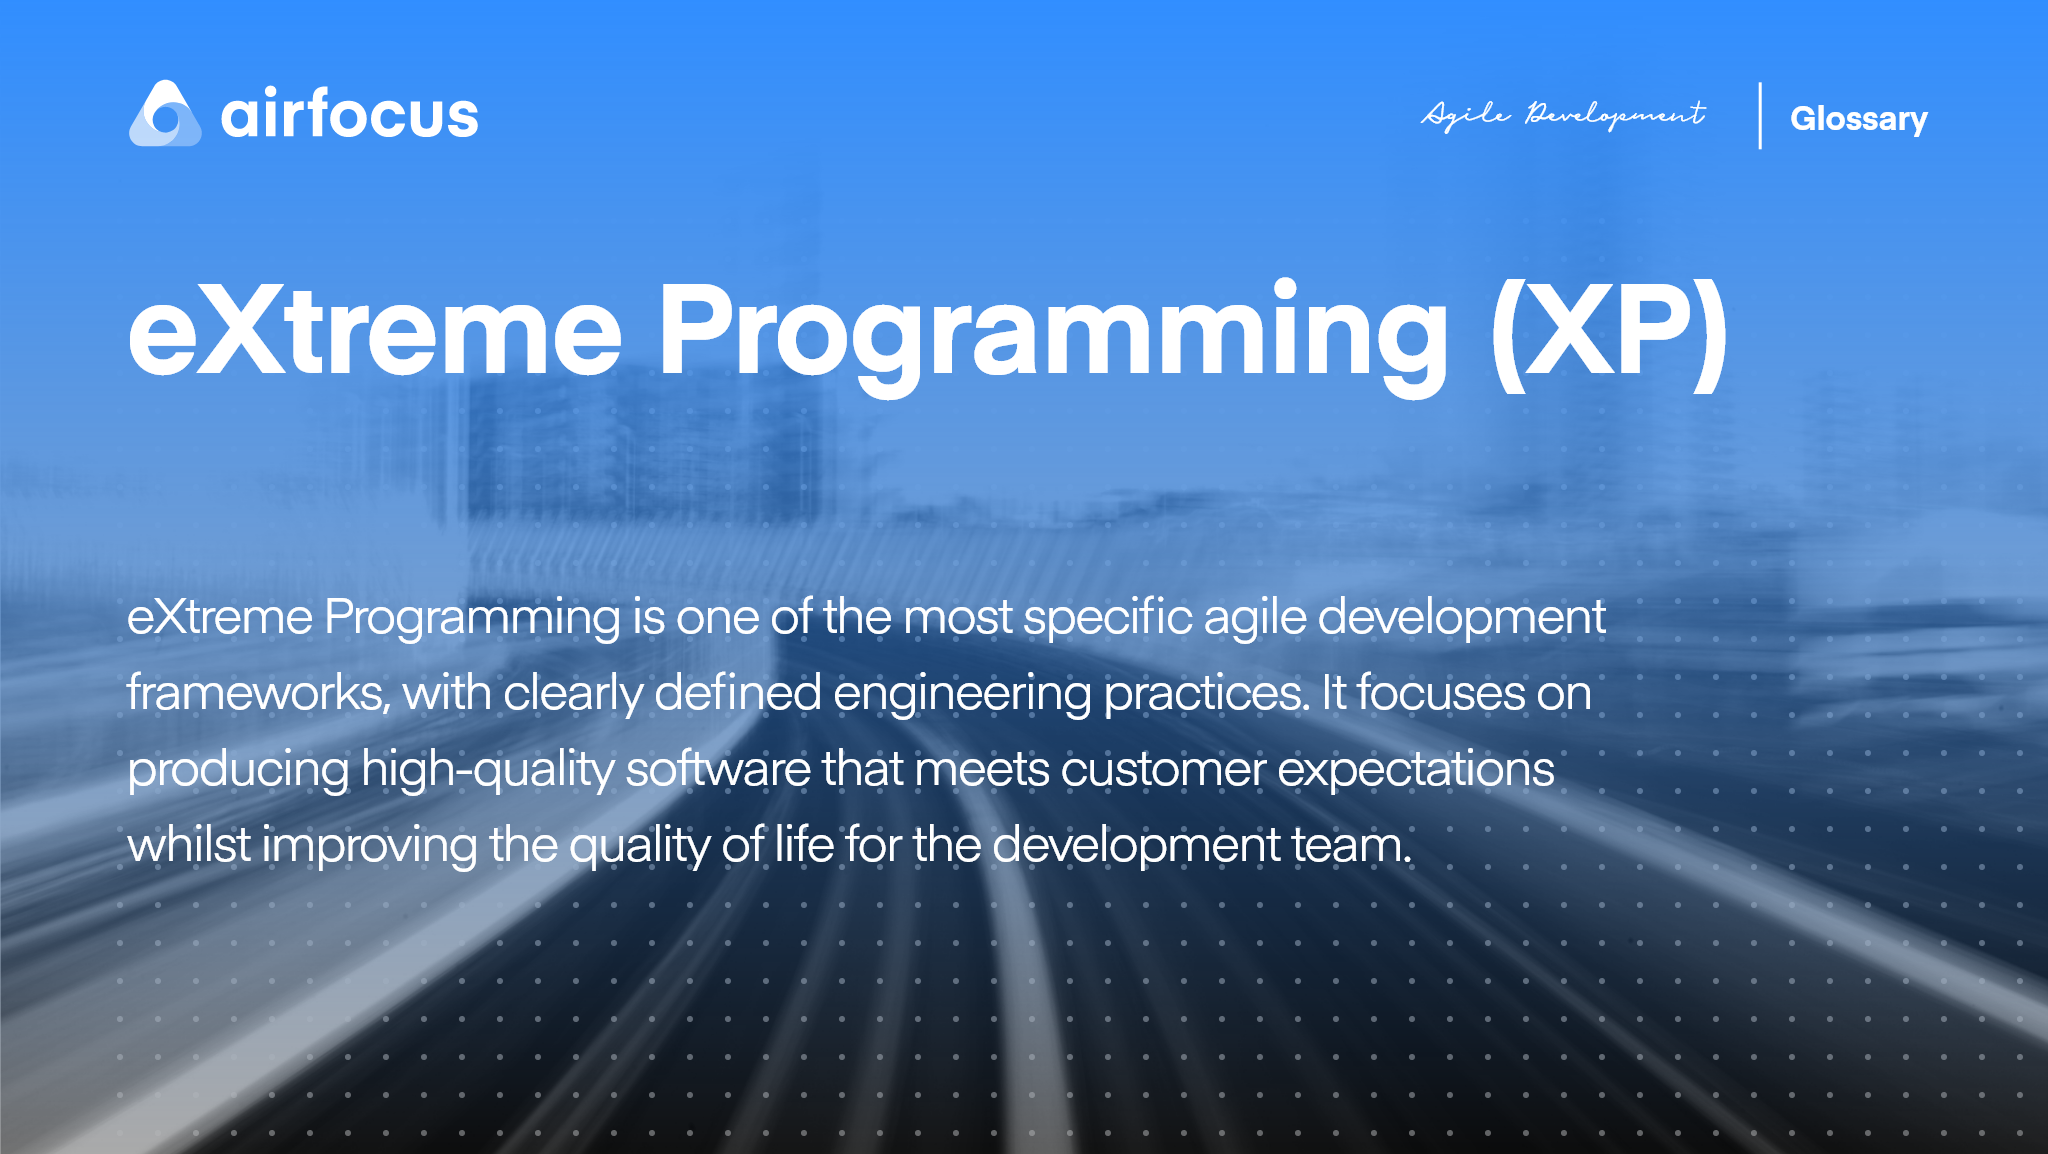 What Is eXtreme Programming (XP)